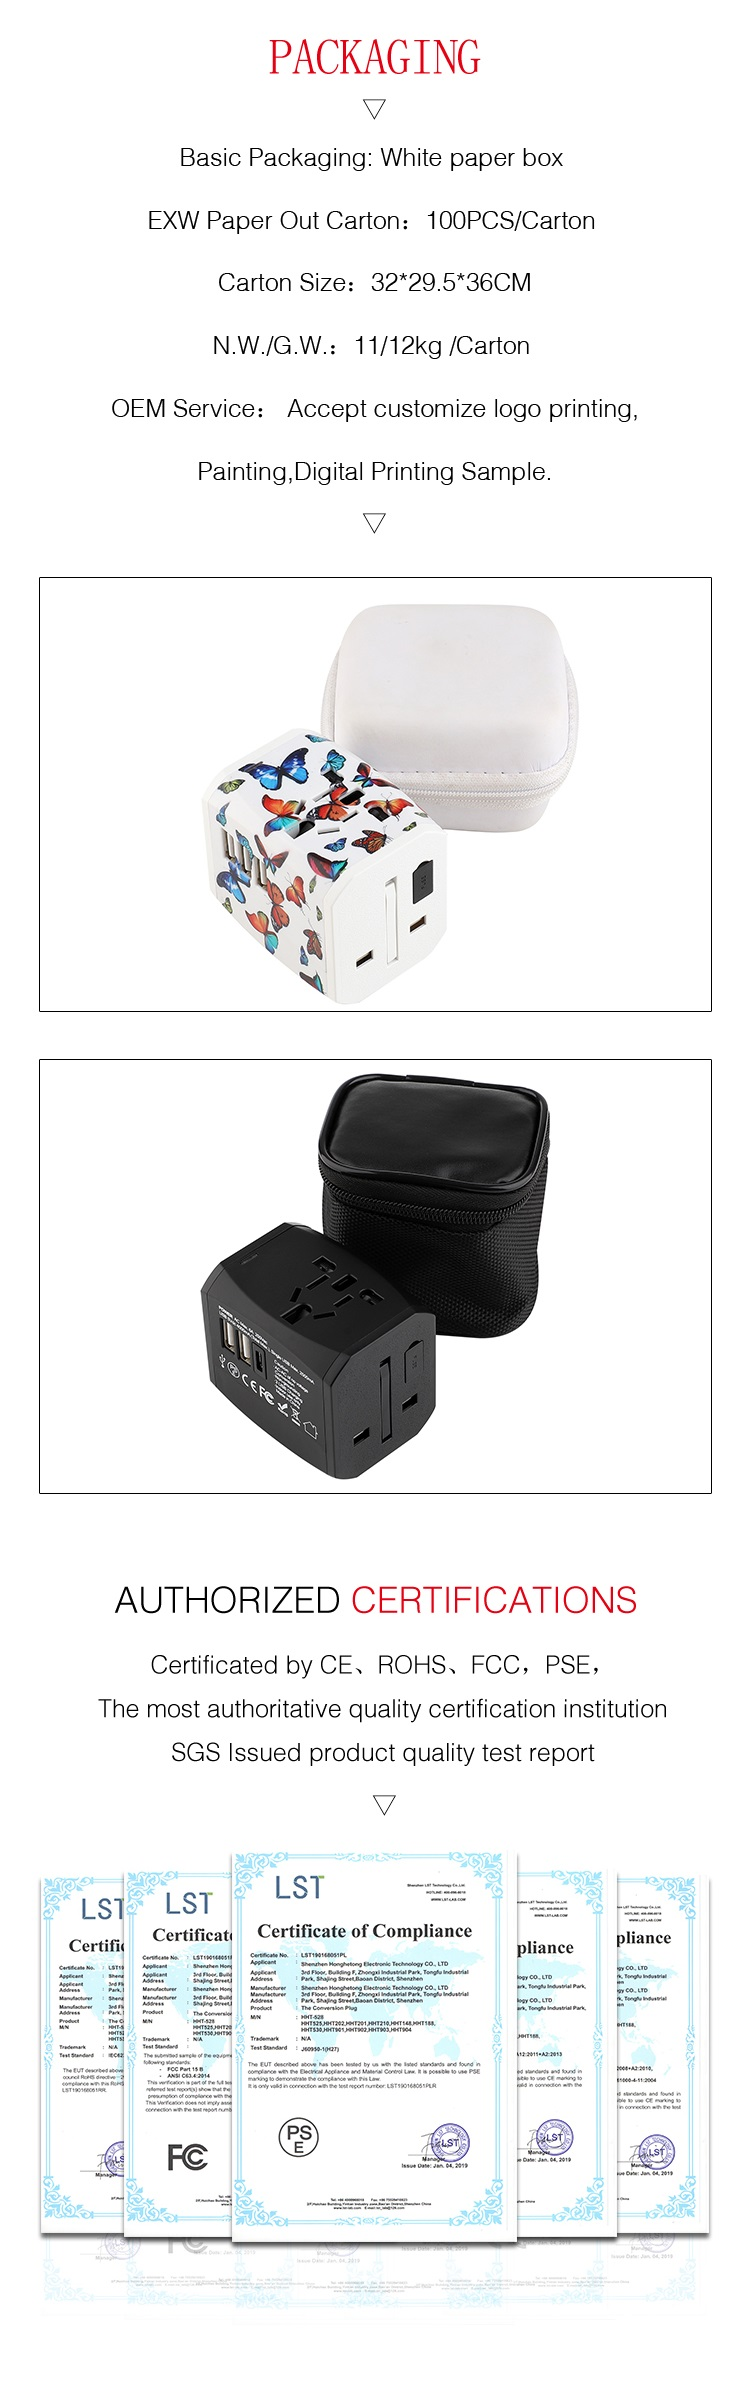 2019 new product 5v4000mA 3 usb wall charger universal ac socket travel adapter with BS8546 CE FCC ROHS PSE certificates